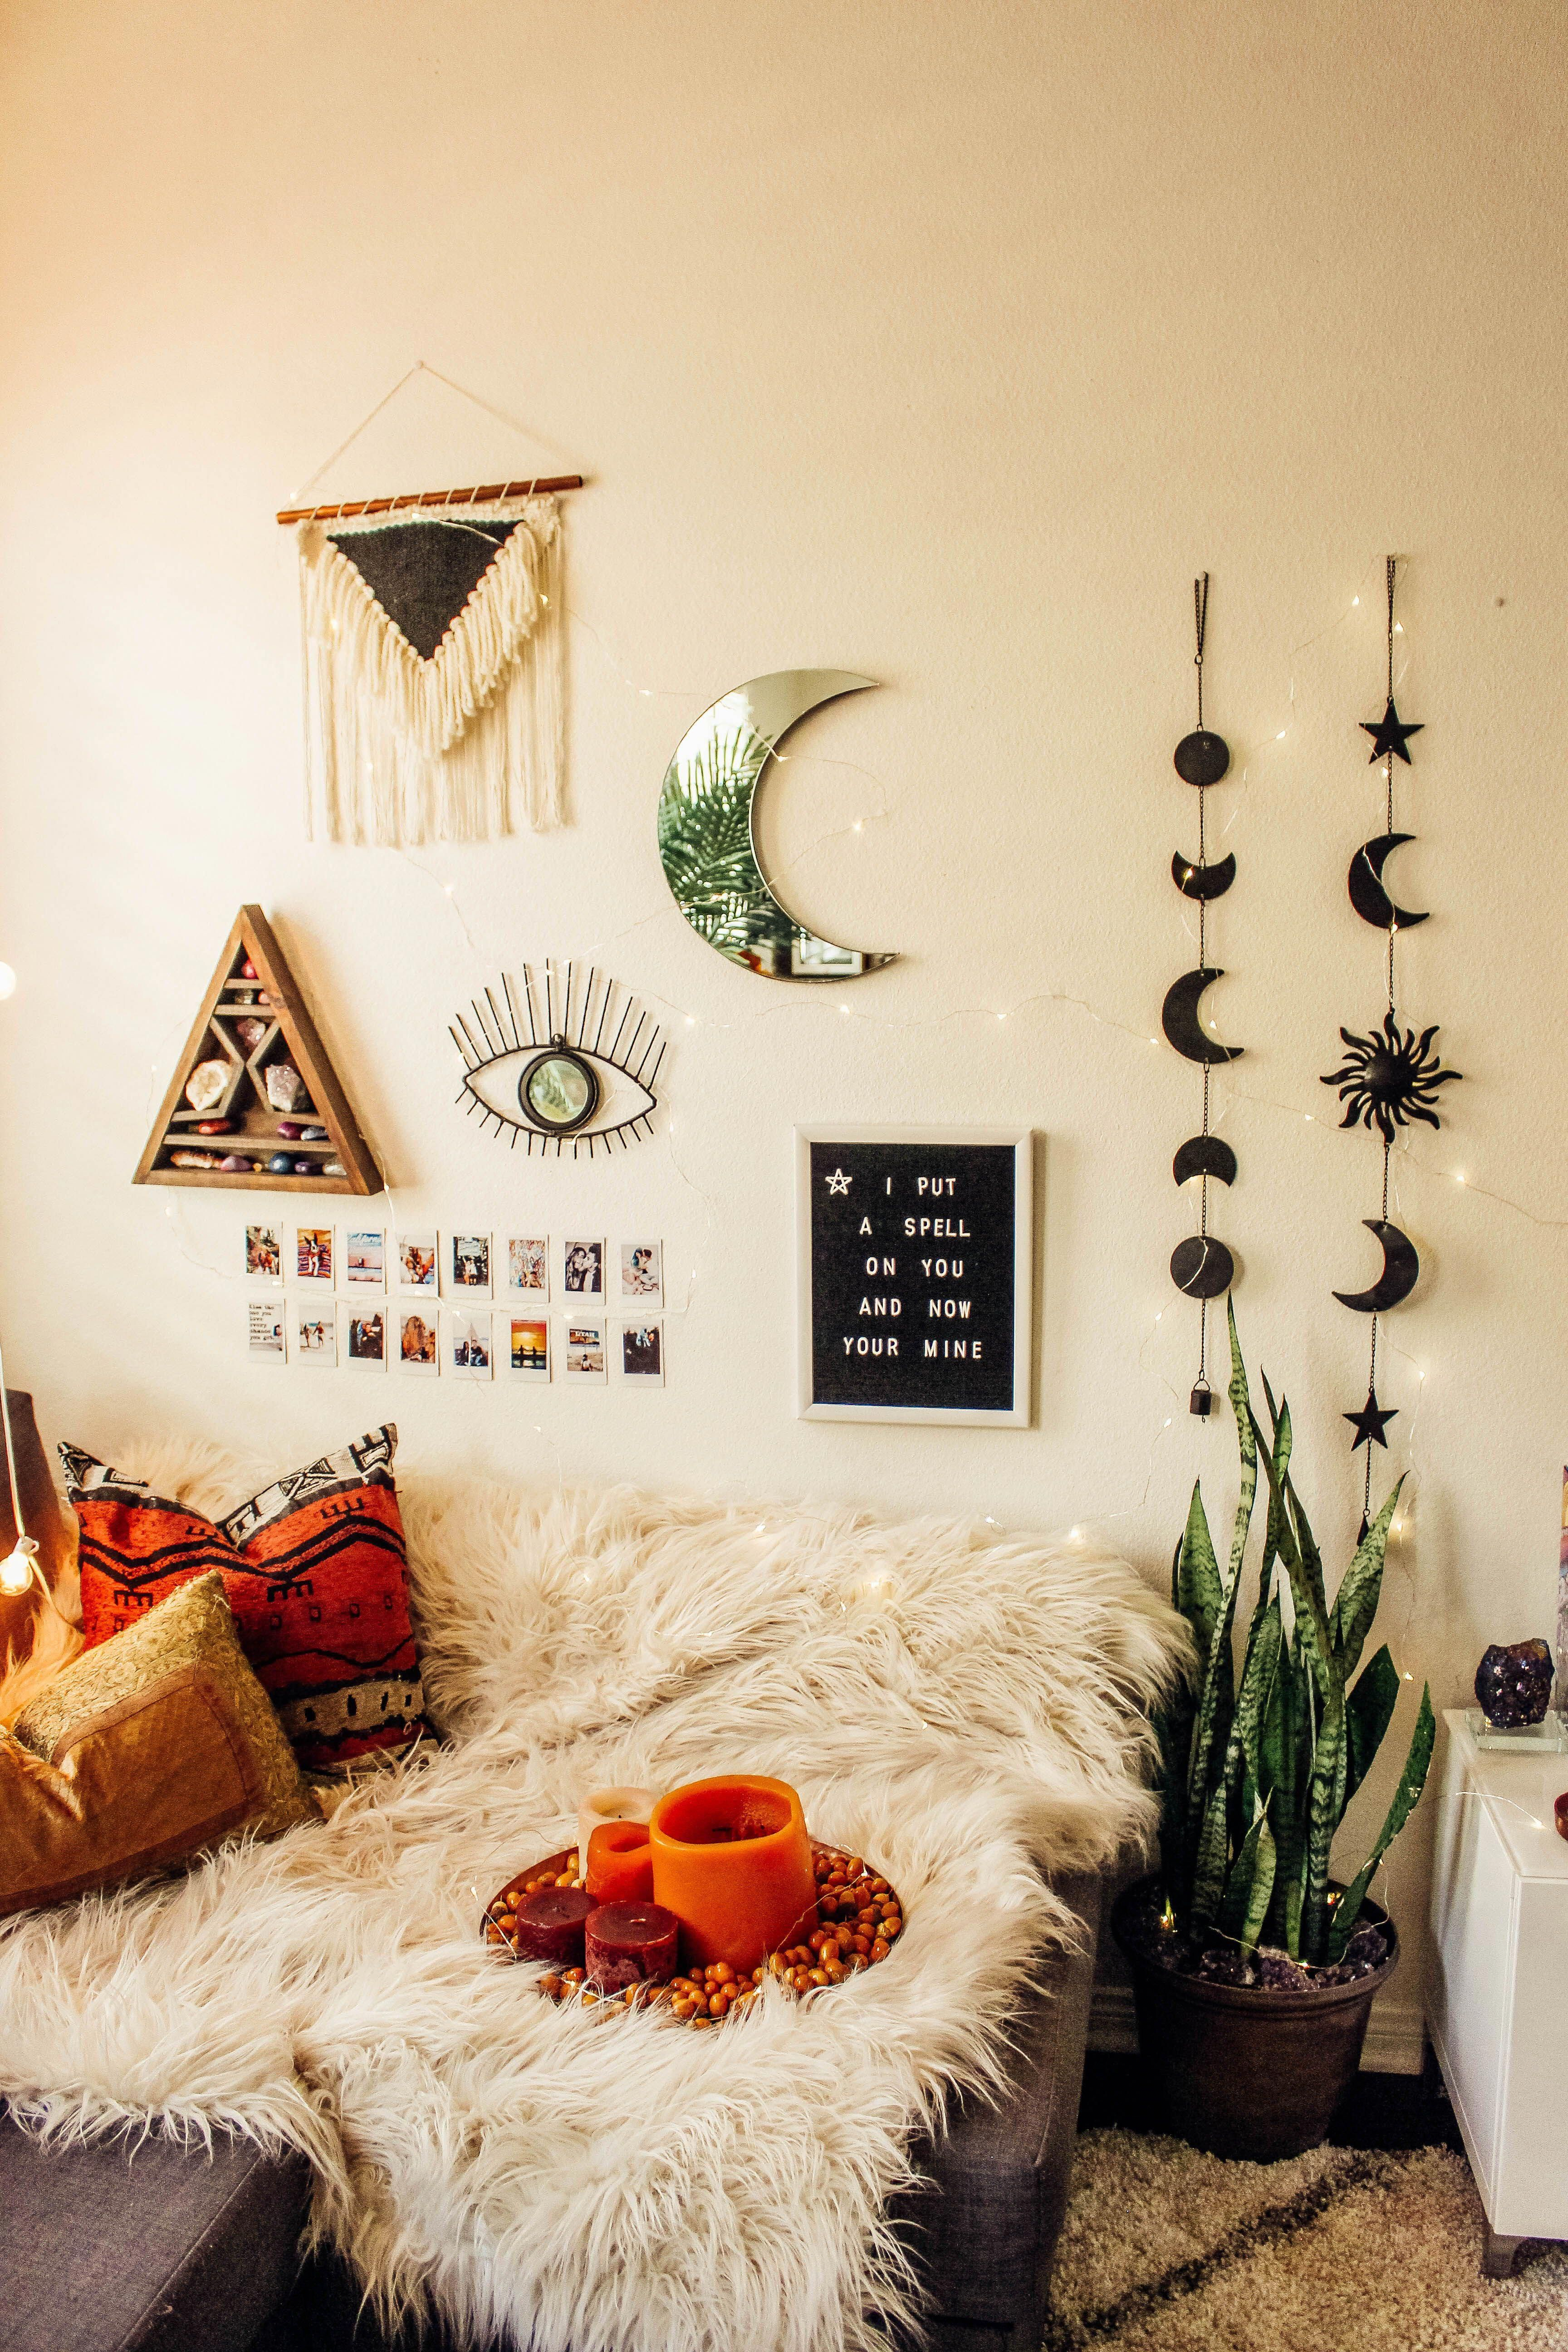 Cheap House Decorations For Sale Low Budget Bedroom Decorating Ideas Cheap Decorating Ideas For S Hanging Wall Decor Handmade Home Decor Kids Bedroom Decor